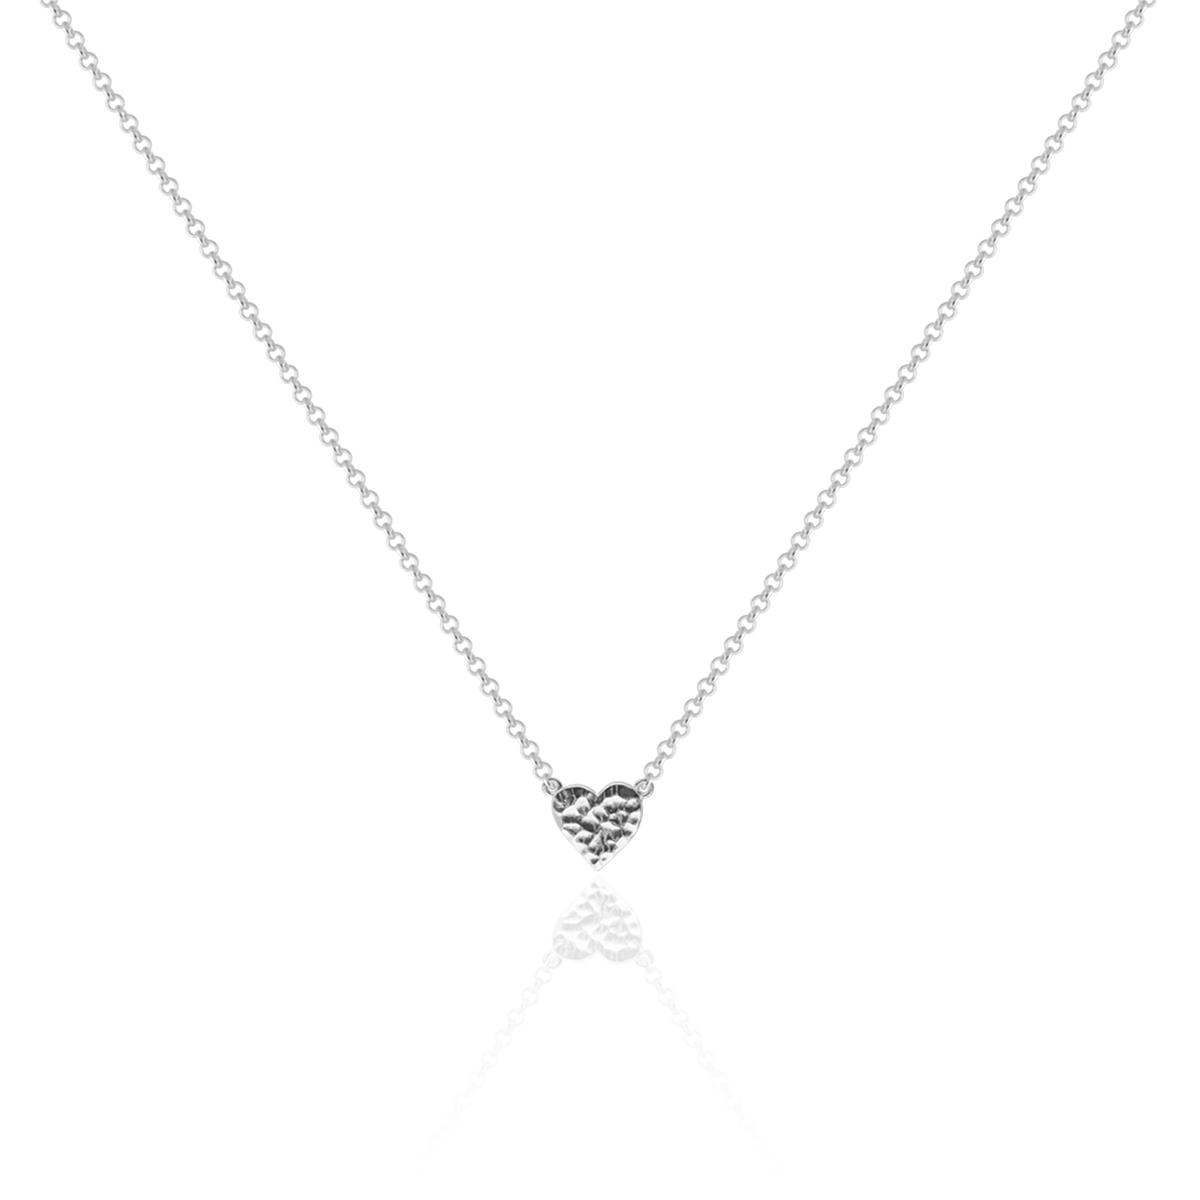 SBYS_WILDHOOD_WILD_HEART_NECKLACE_RHODIUMPLATEDSILVER_1190